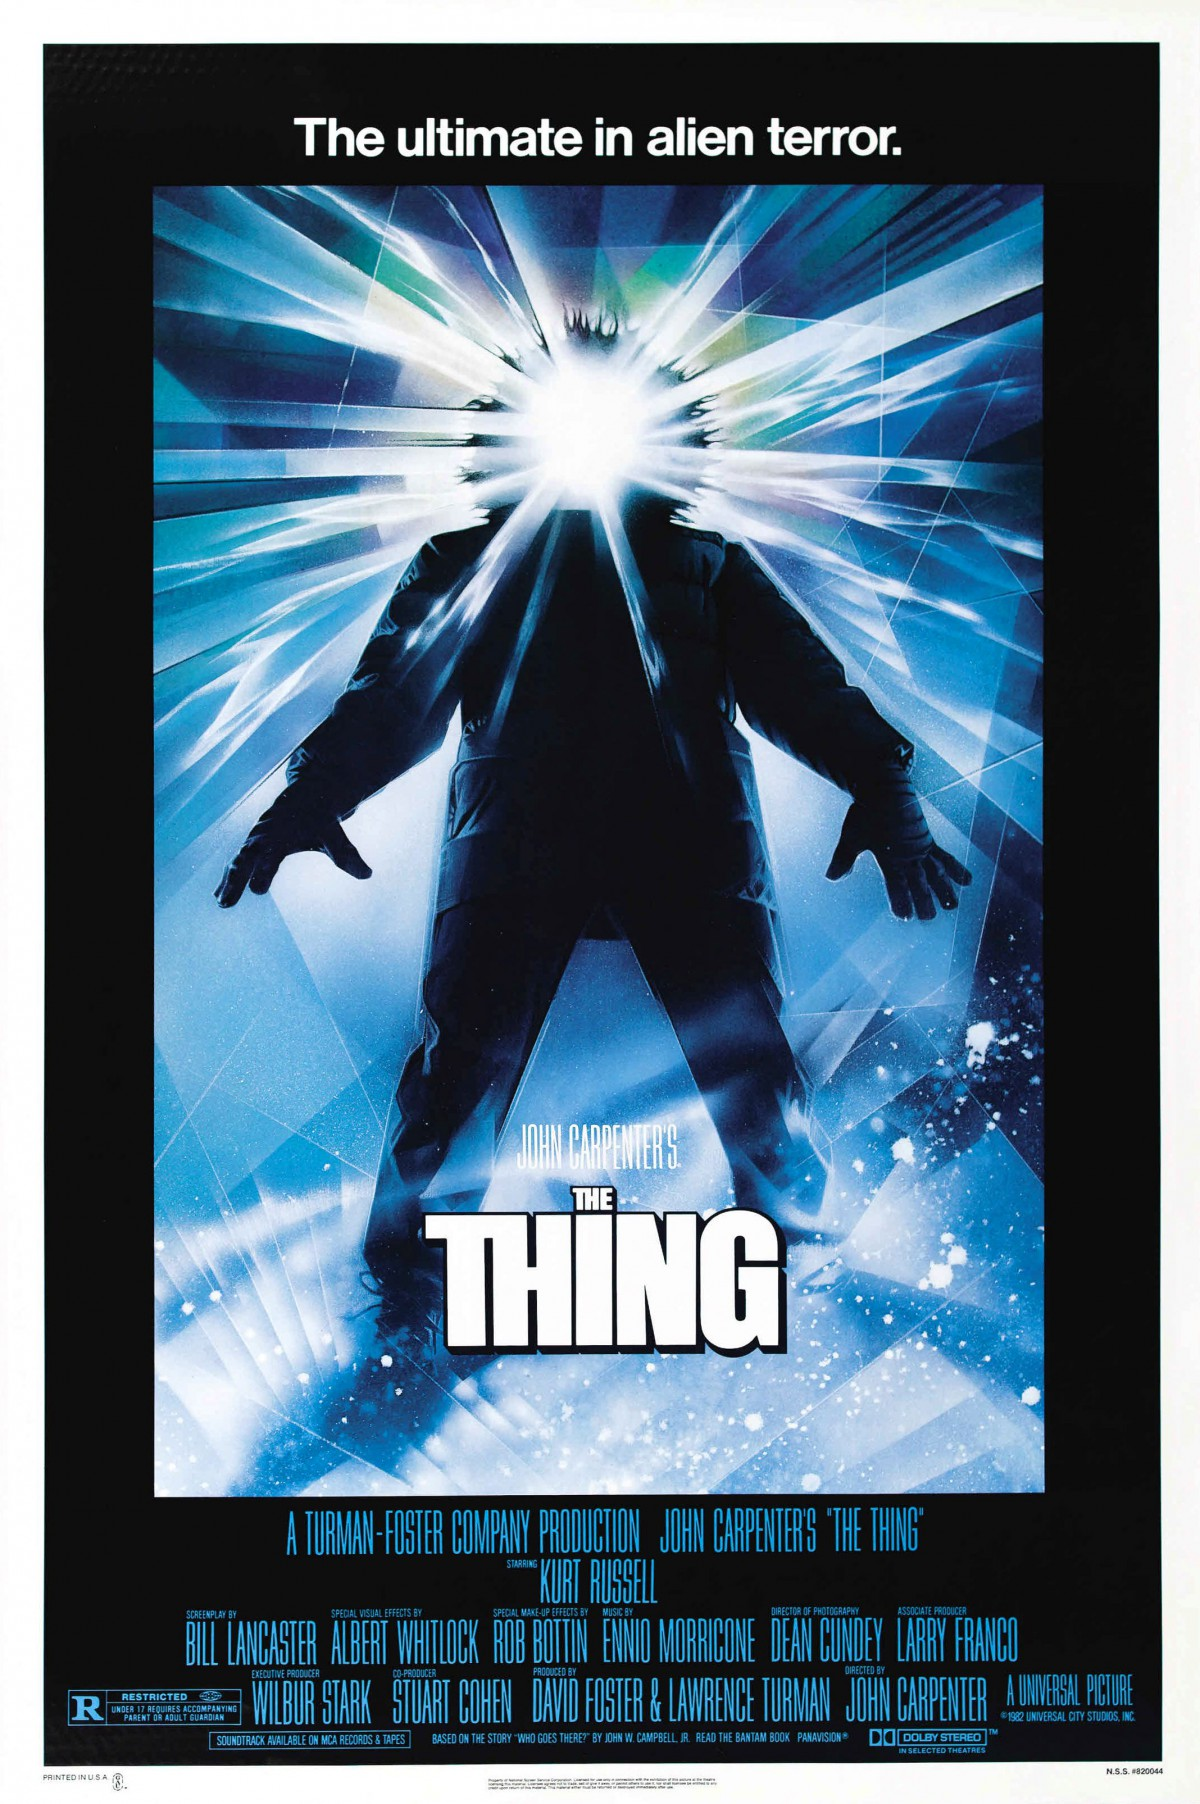 13. The Thing (1982)